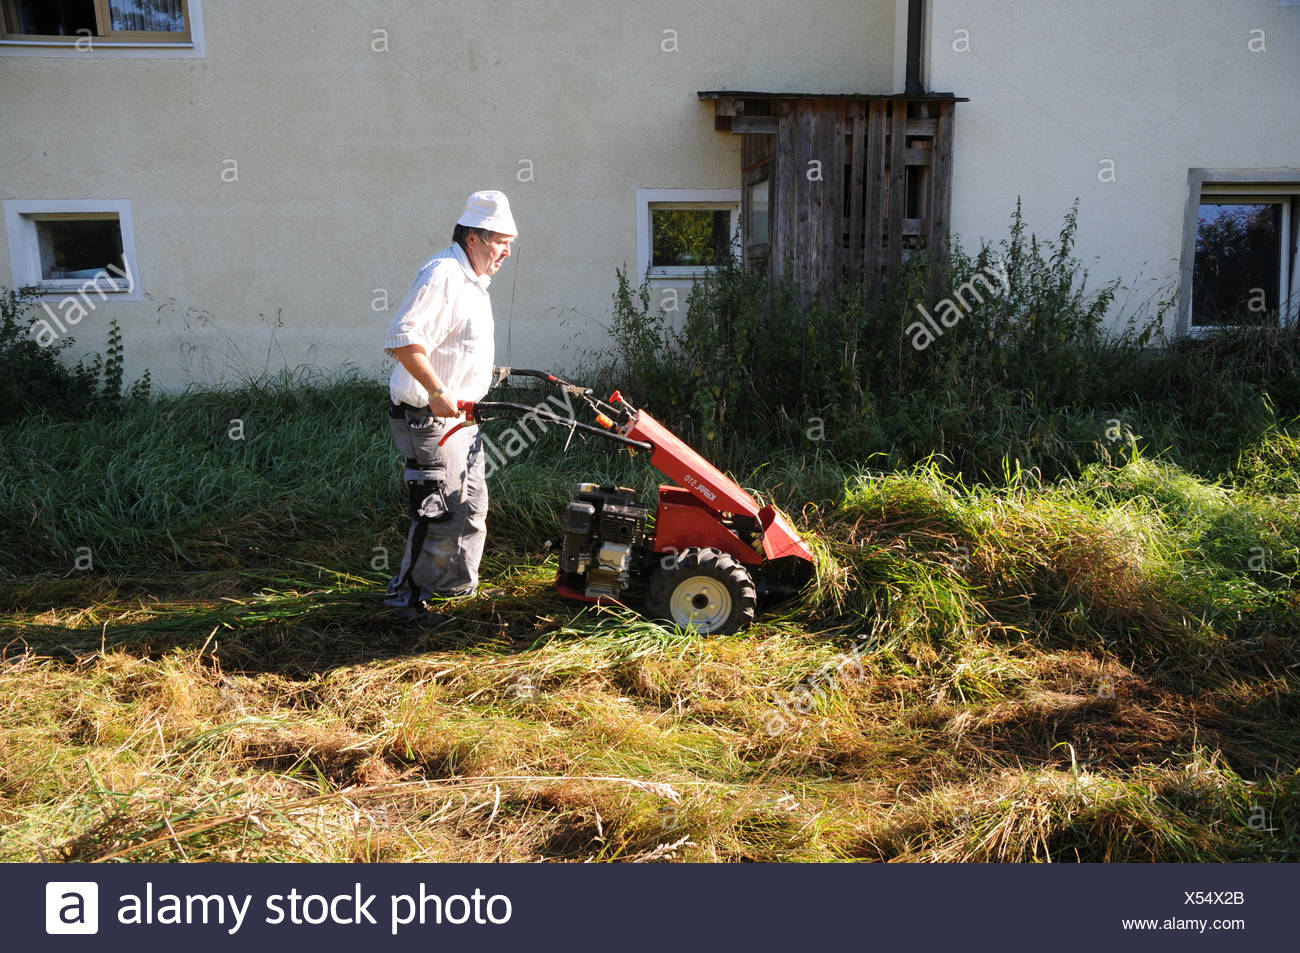 meadow mowing with sickle bar mower Stock Photo: 278547427 - Alamy